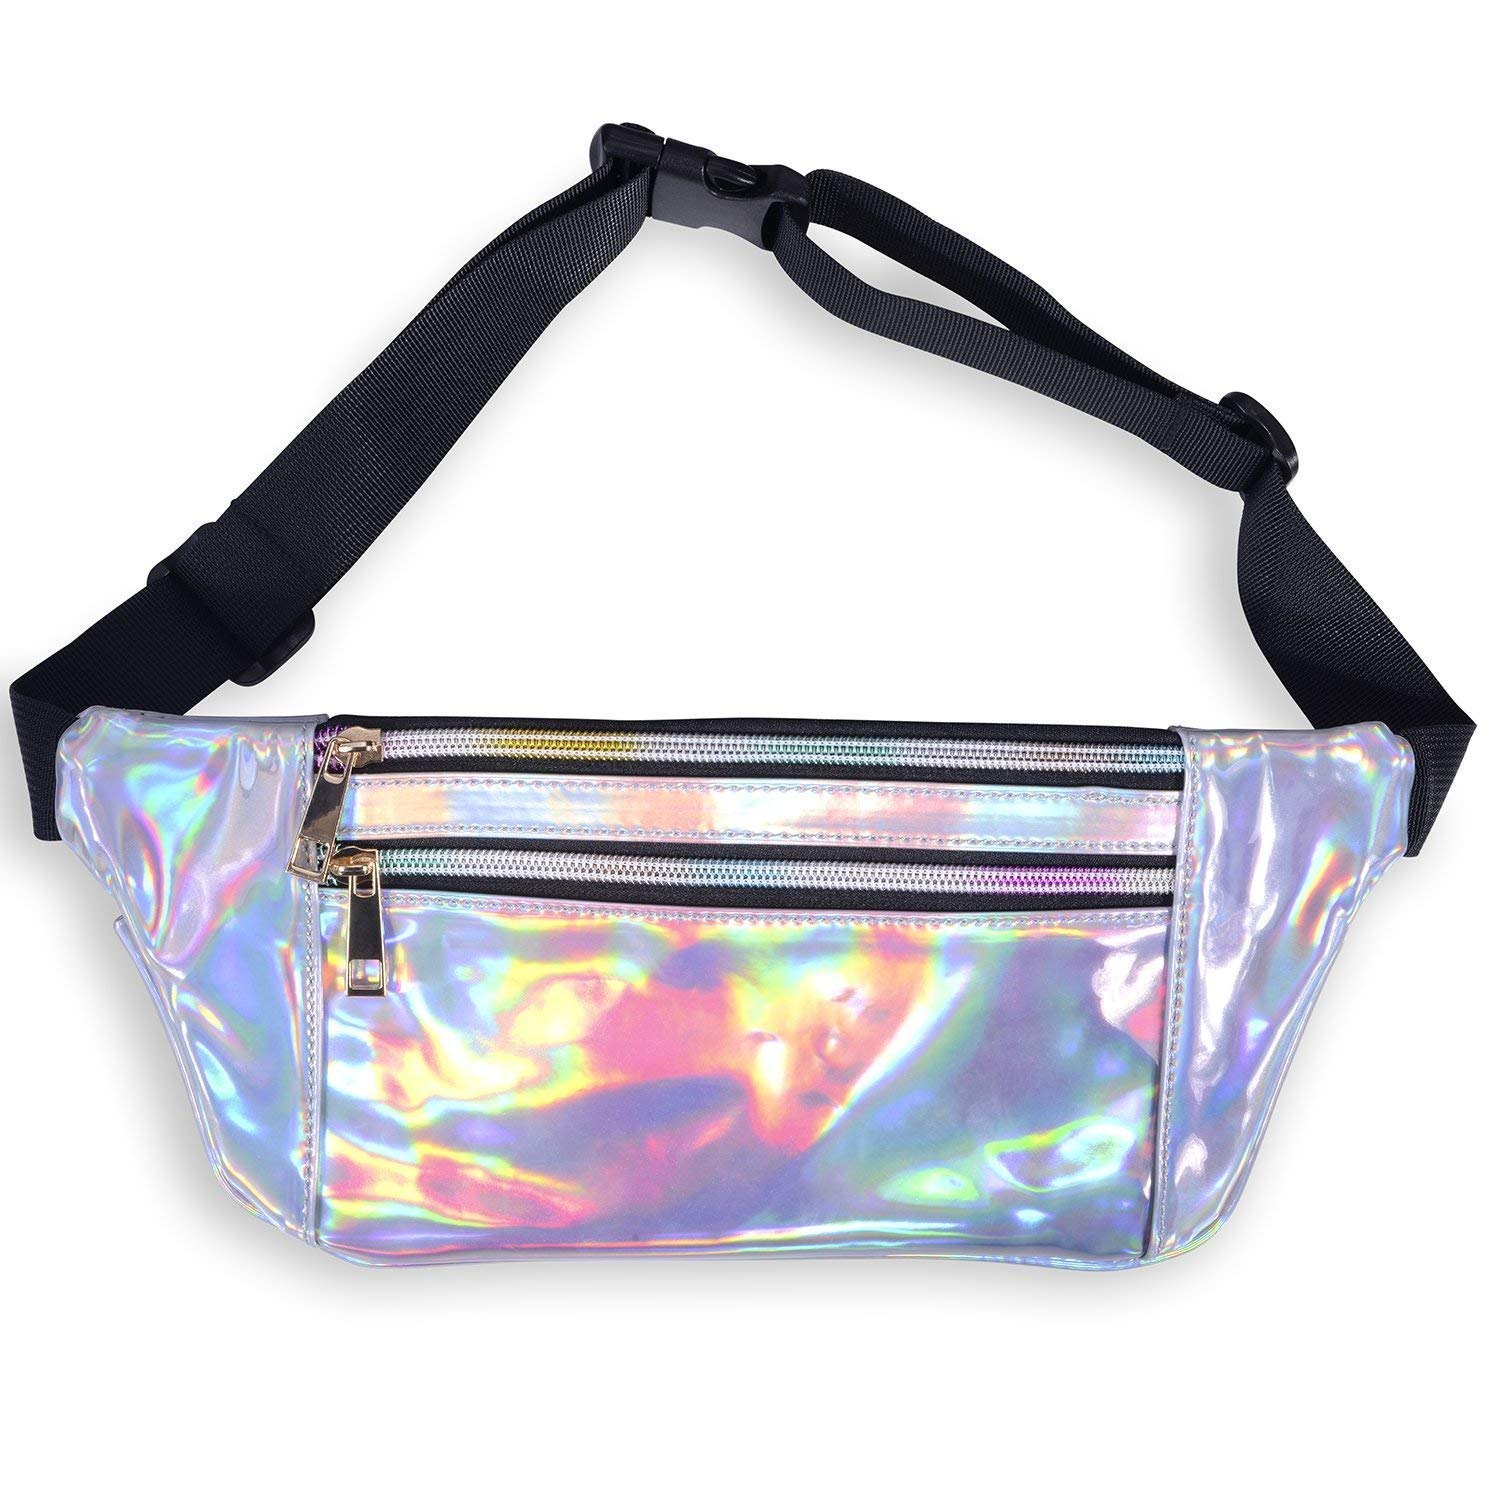 78d129b651a 2018 New Fanny Pack for Women - Holographic Fanny Pack Waist Belt Bum Chest  Sports Festival